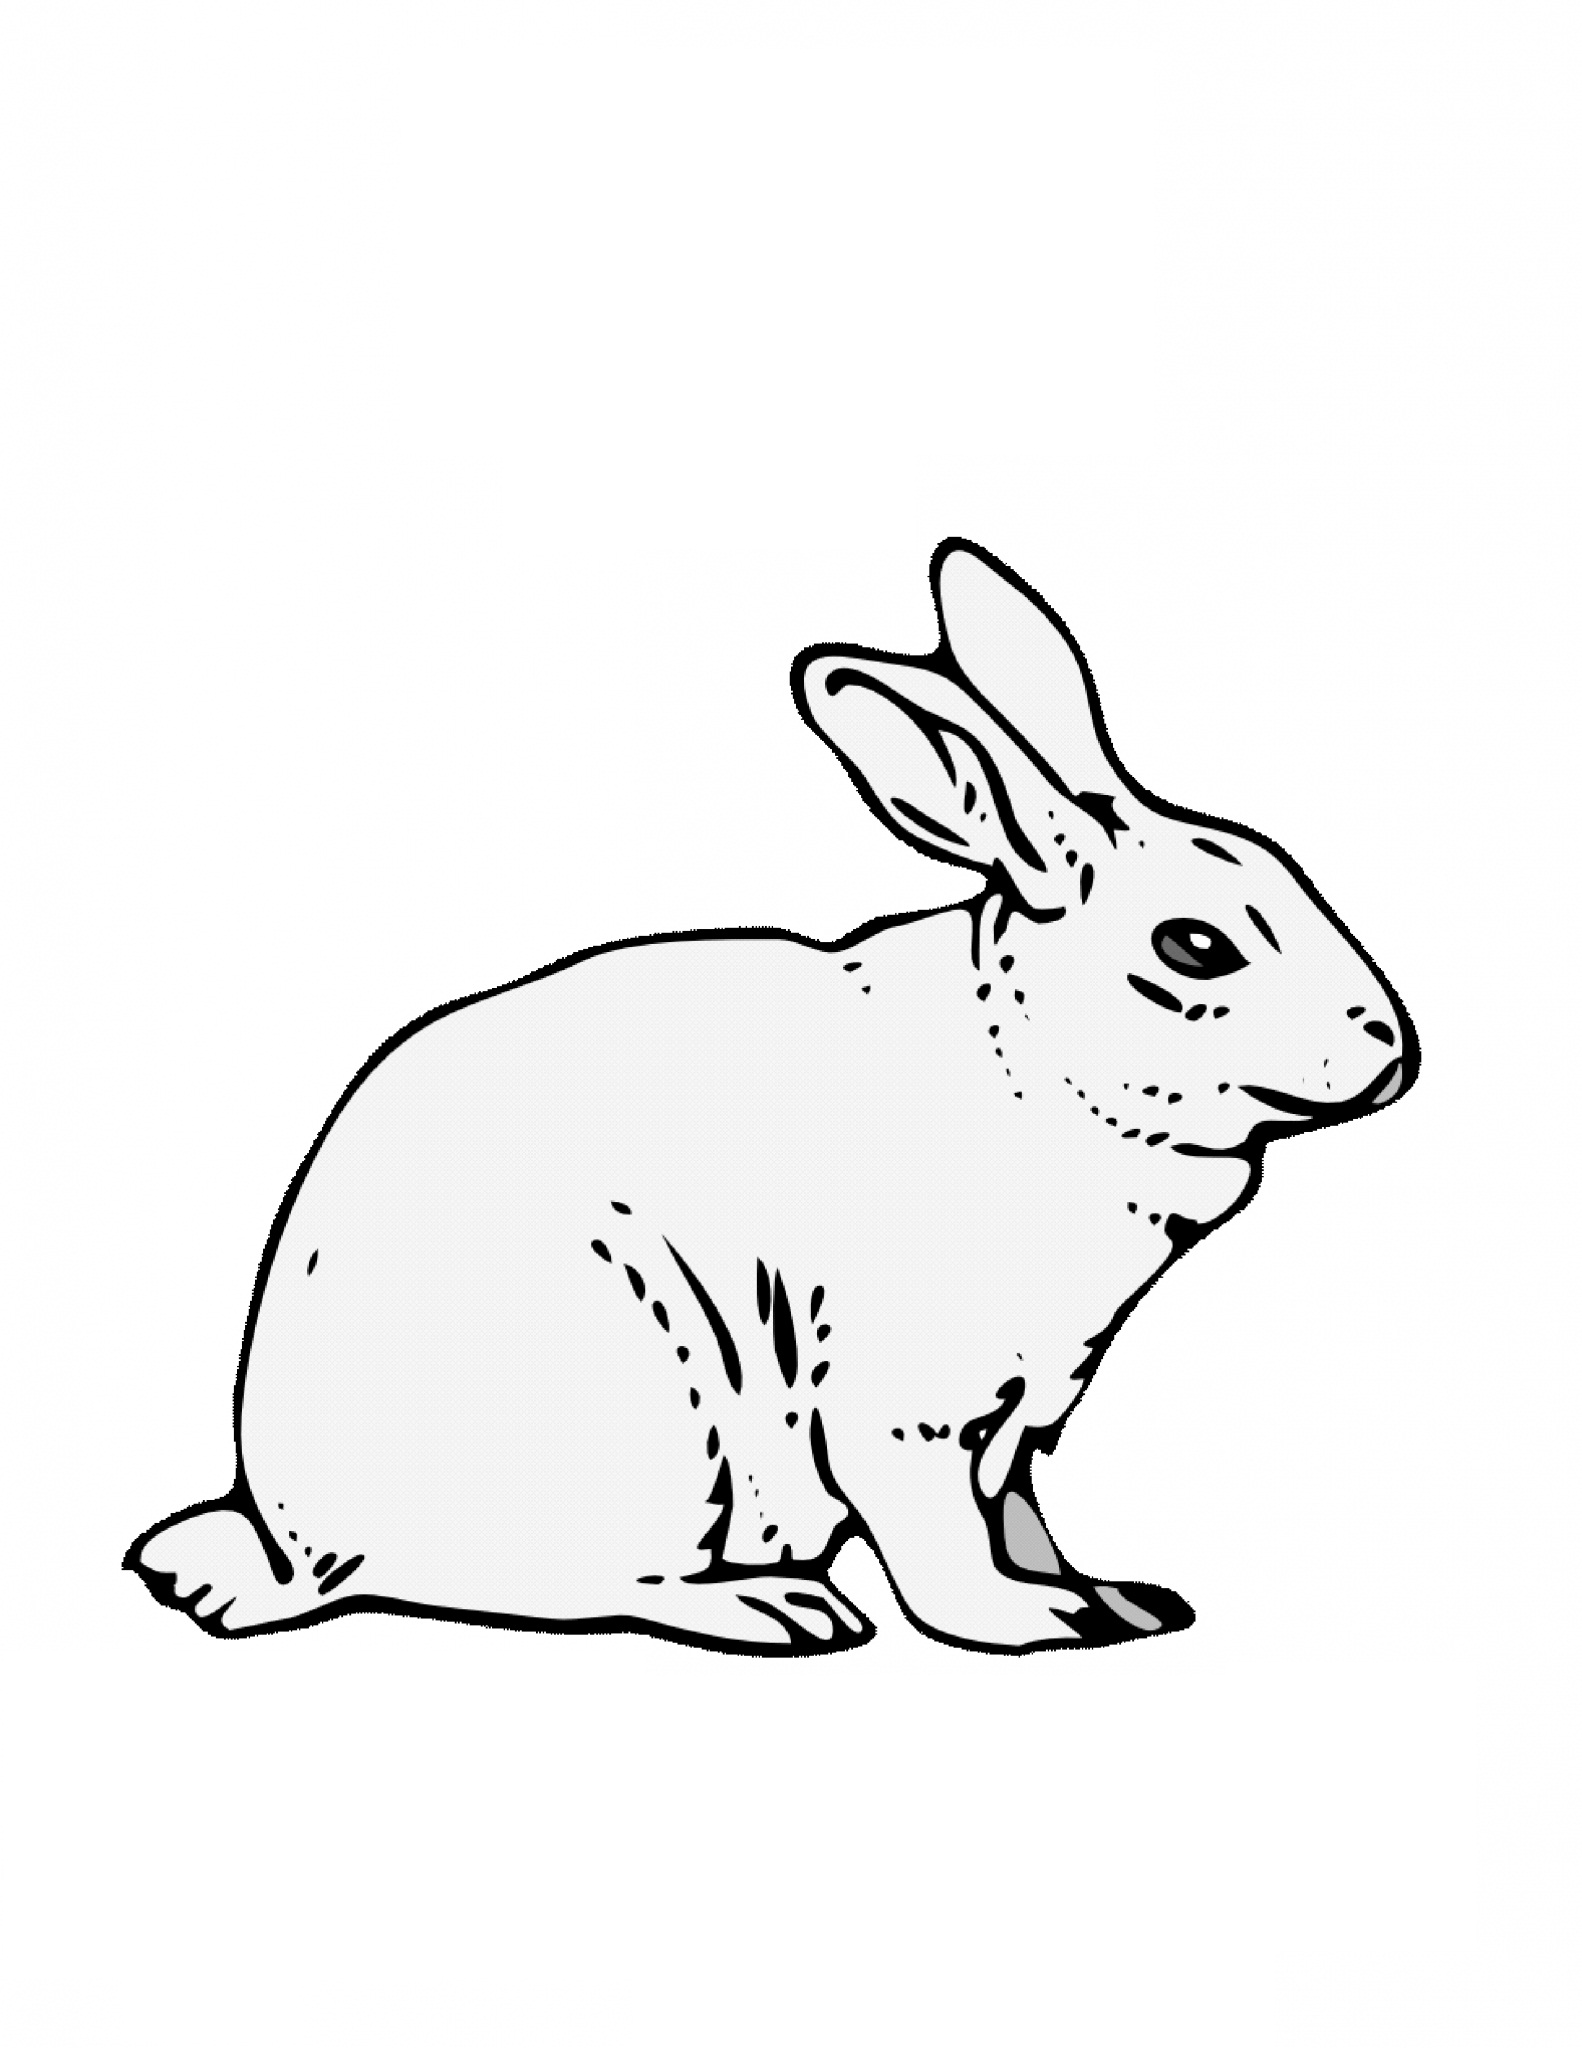 rabbit picture for colouring free printable rabbit coloring pages for kids colouring rabbit for picture